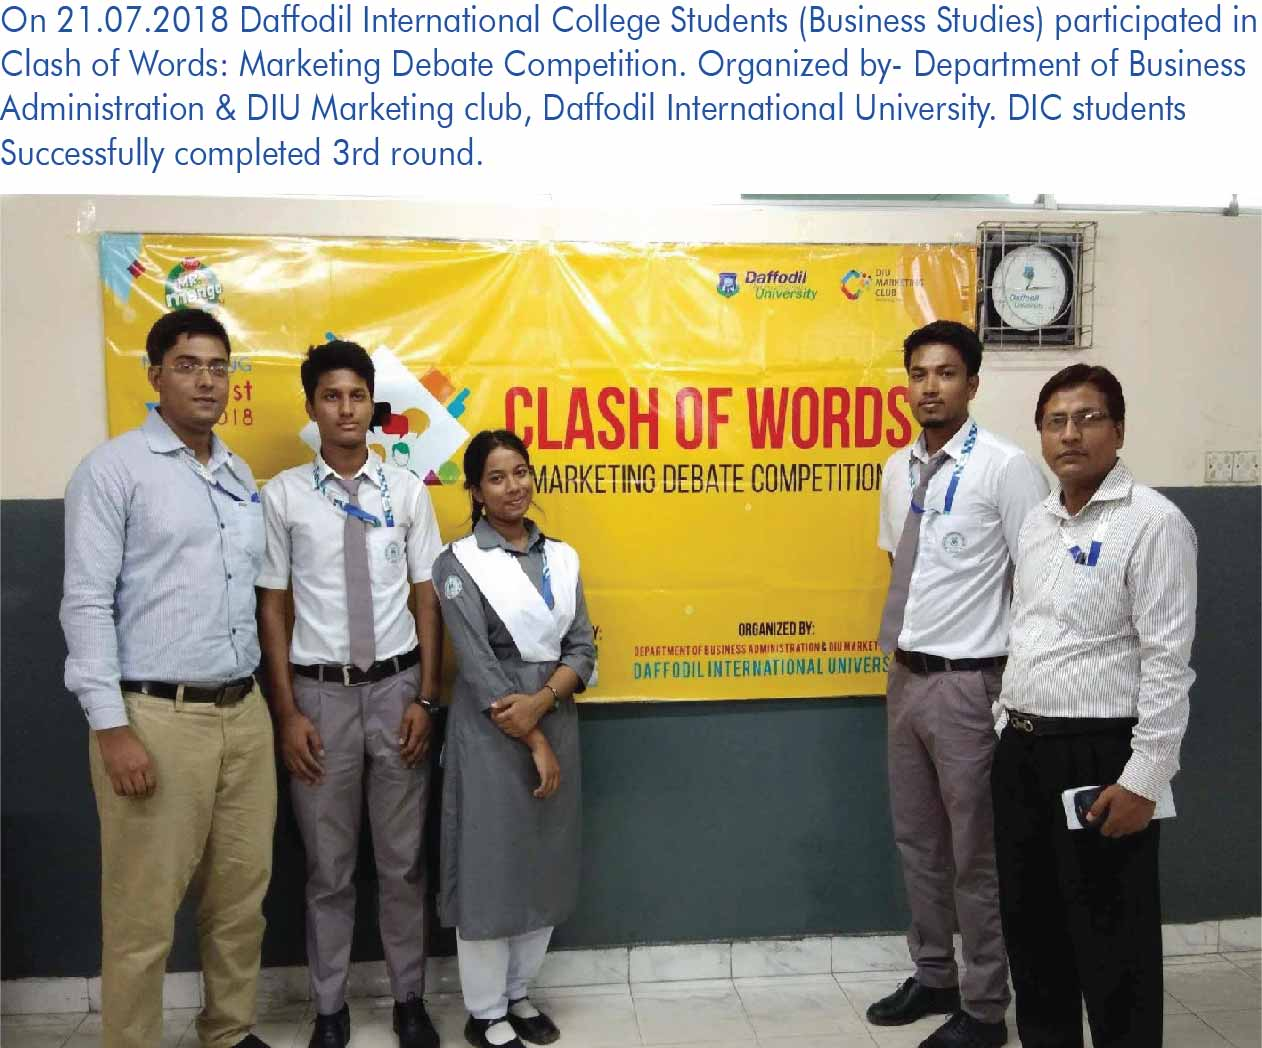 Marketing Debate Competition